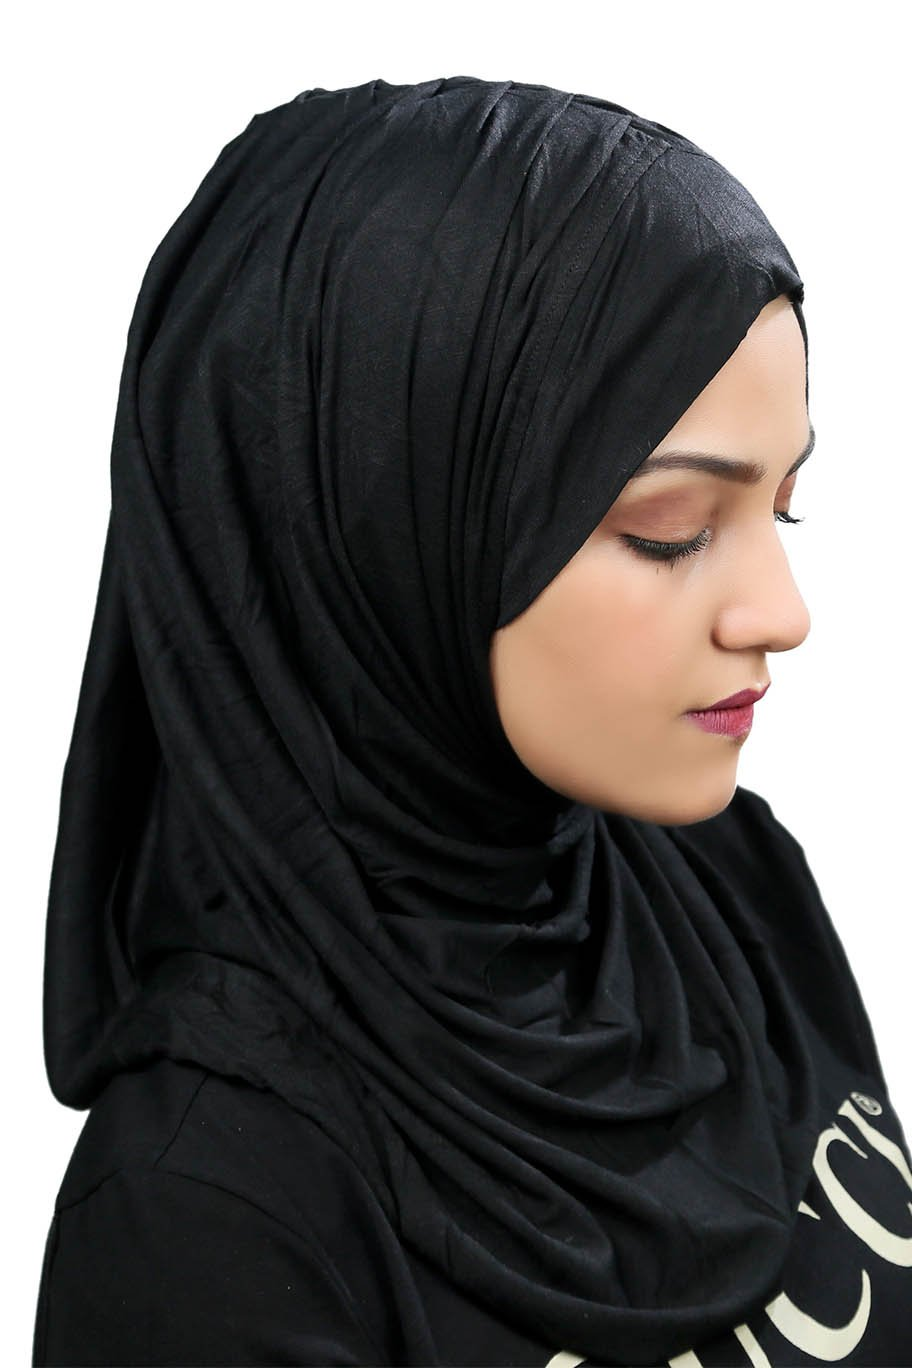 Elegant Black Ready To Wear Hijab - Jersey Hijab - The Modest Look